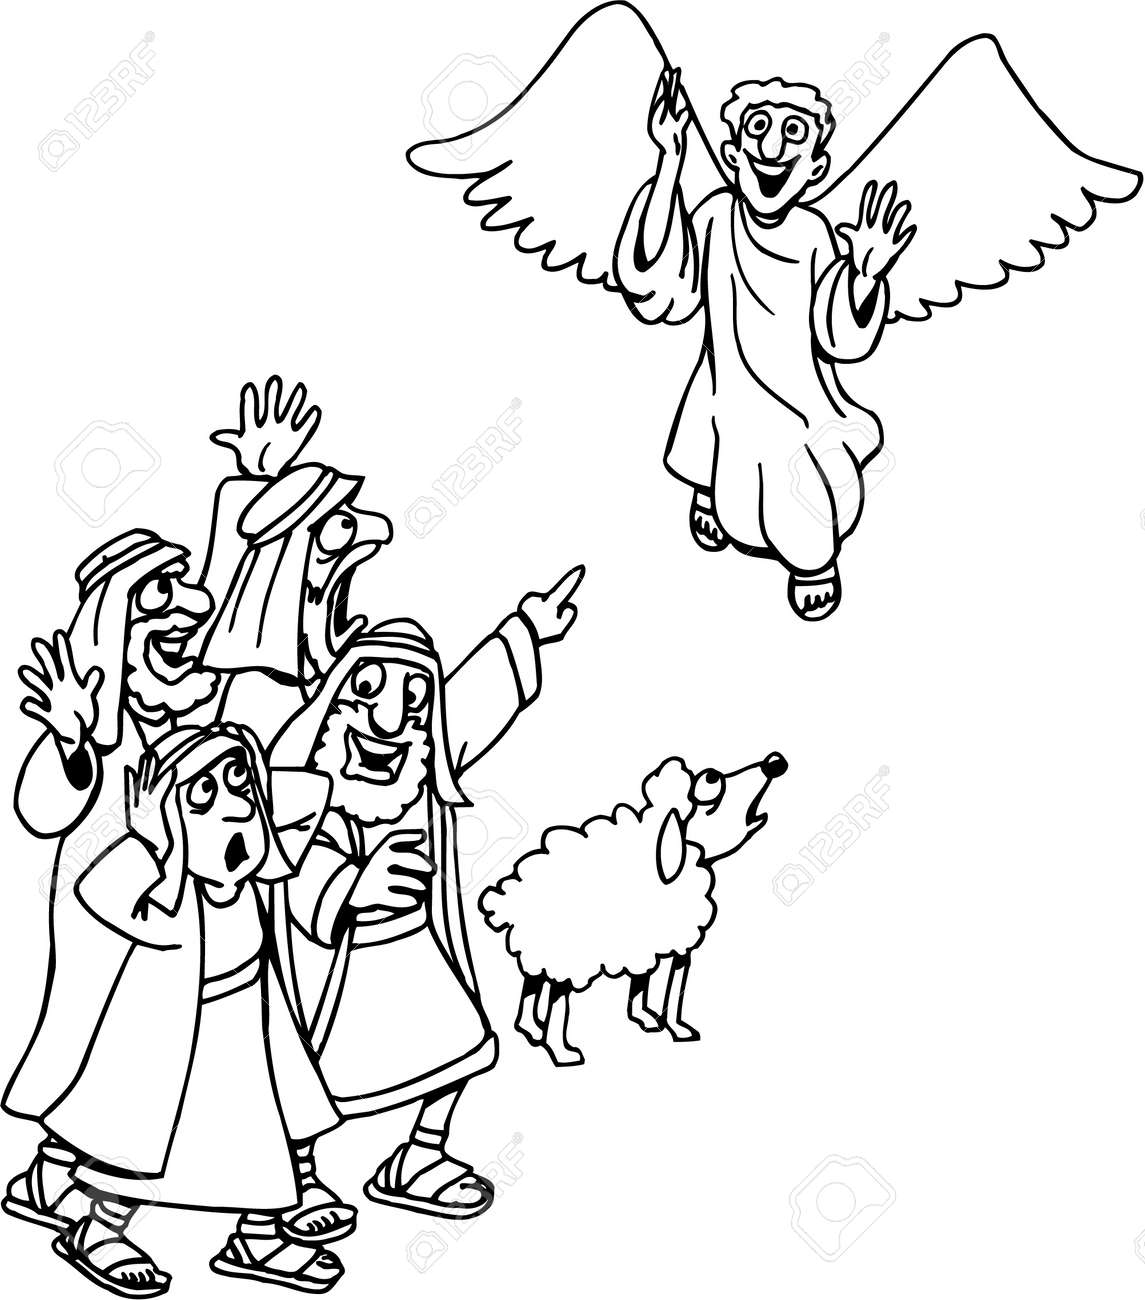 Angels And Shepherds Coloring Pages | Angel coloring pages, Sunday ... | 1300x1144